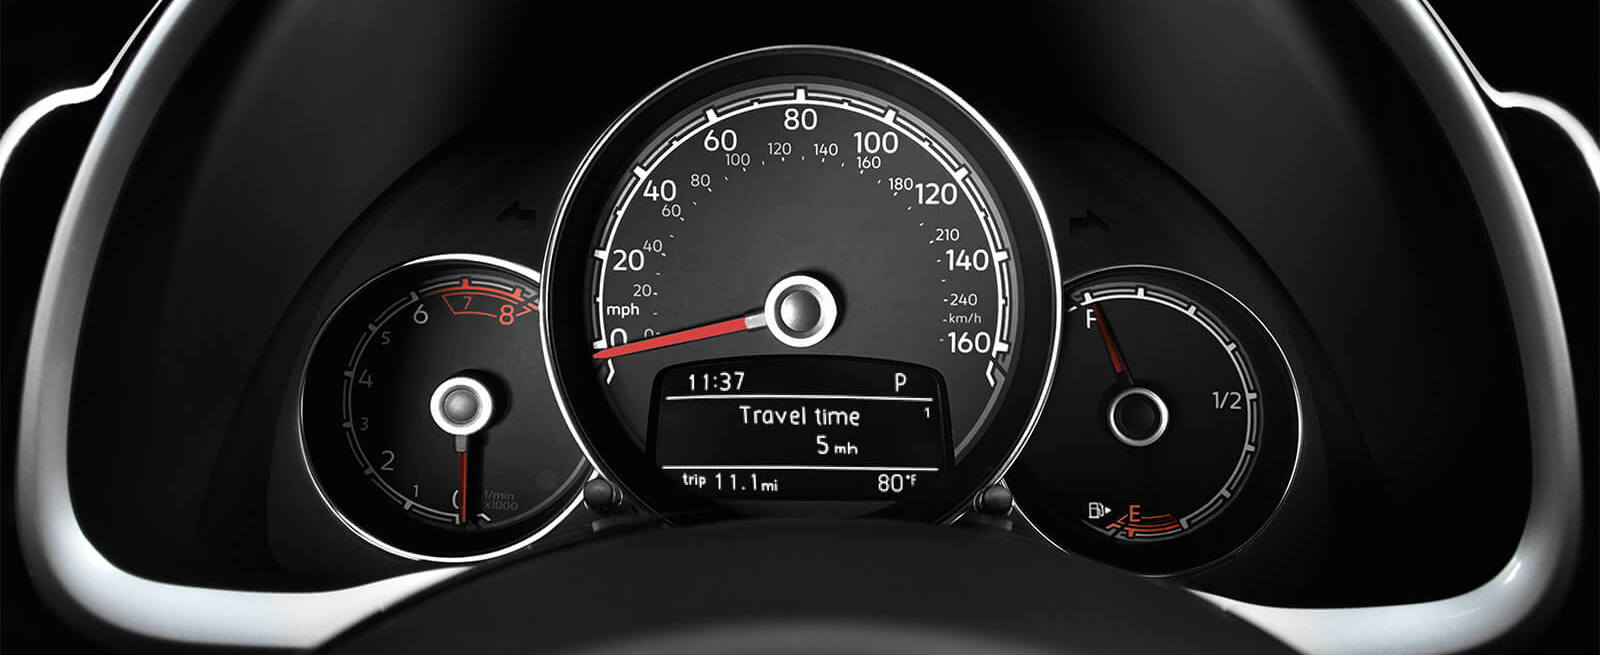 Instrument Panel in the 2019 Beetle